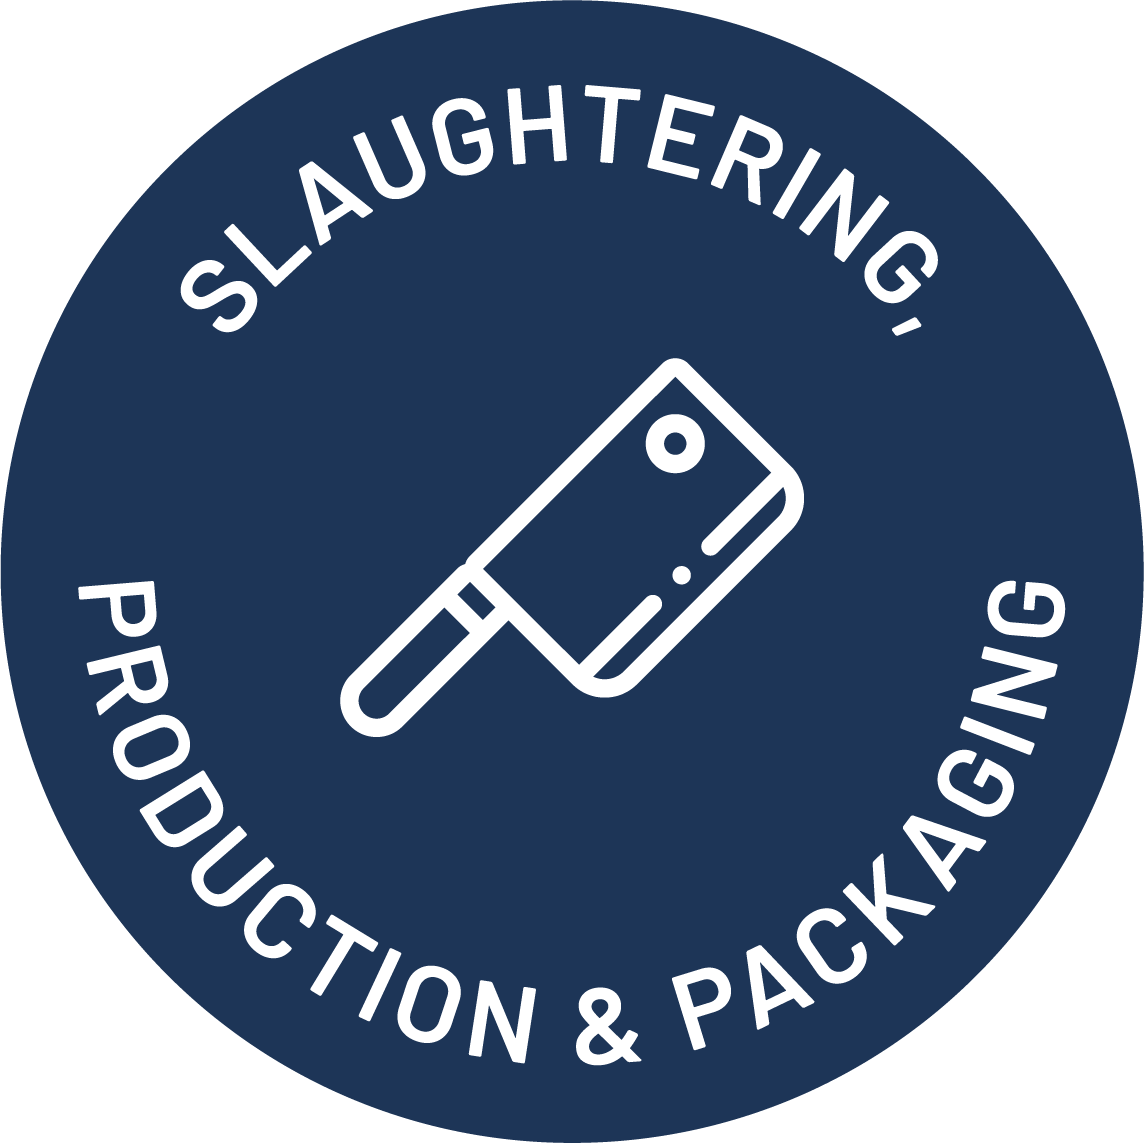 Slaughtering, Production & Packaging